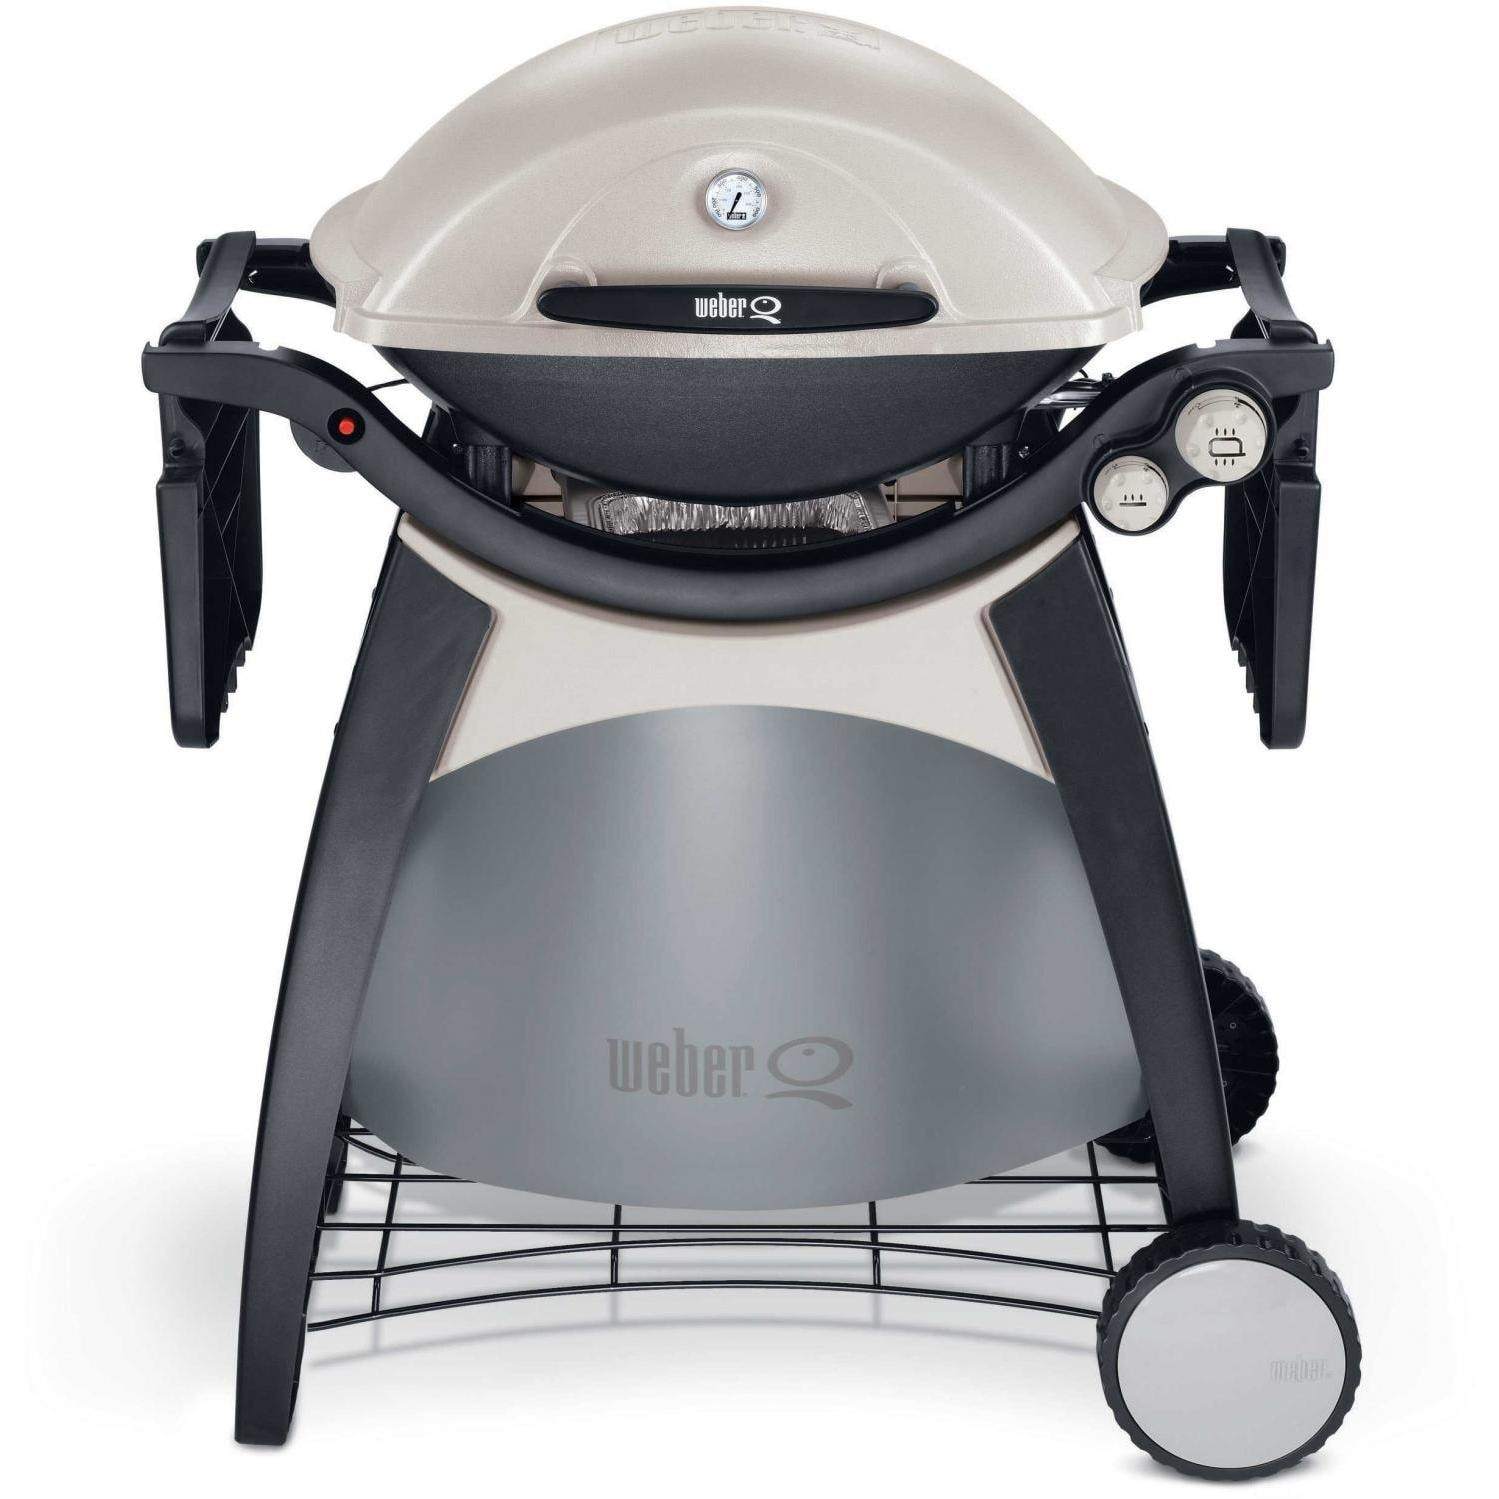 weber q 300 propane gas bbq grill on cart weber grills. Black Bedroom Furniture Sets. Home Design Ideas